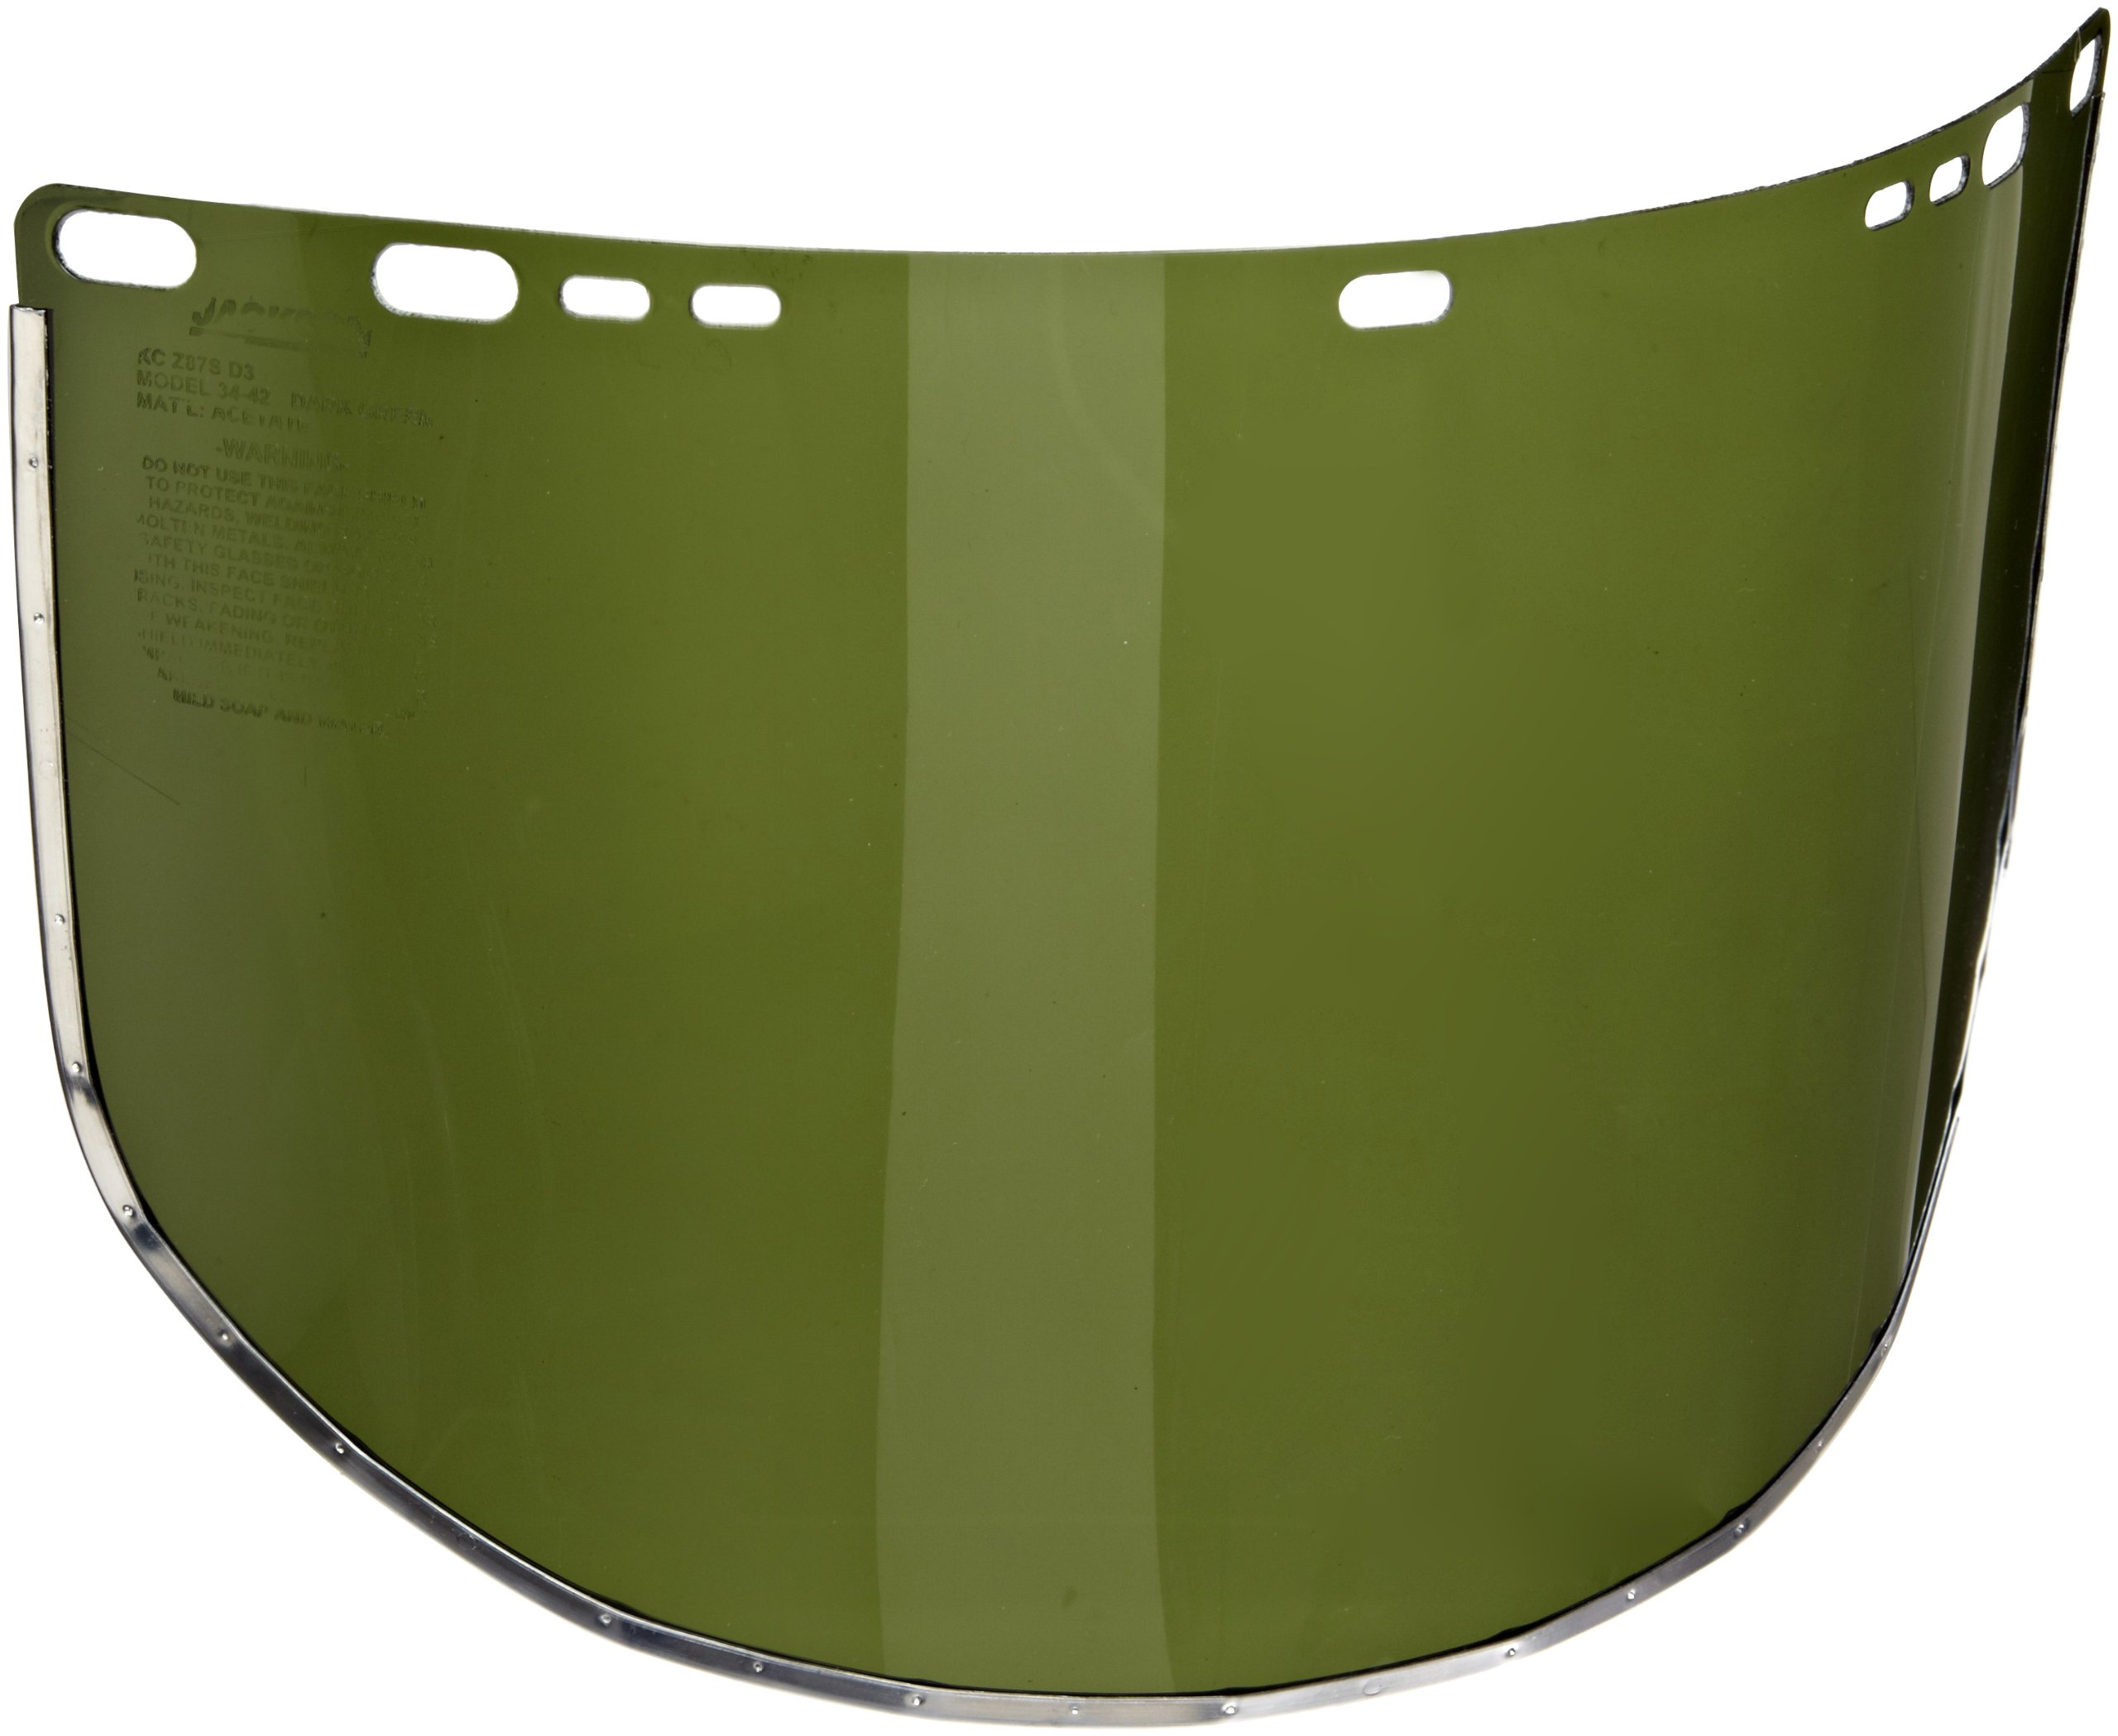 Jackson Safety F30 Acetate Aluminum Bound Face Shield, 19'' Length x 9'' Width x 0.040'' Thick, Dark Green (Case of 50)